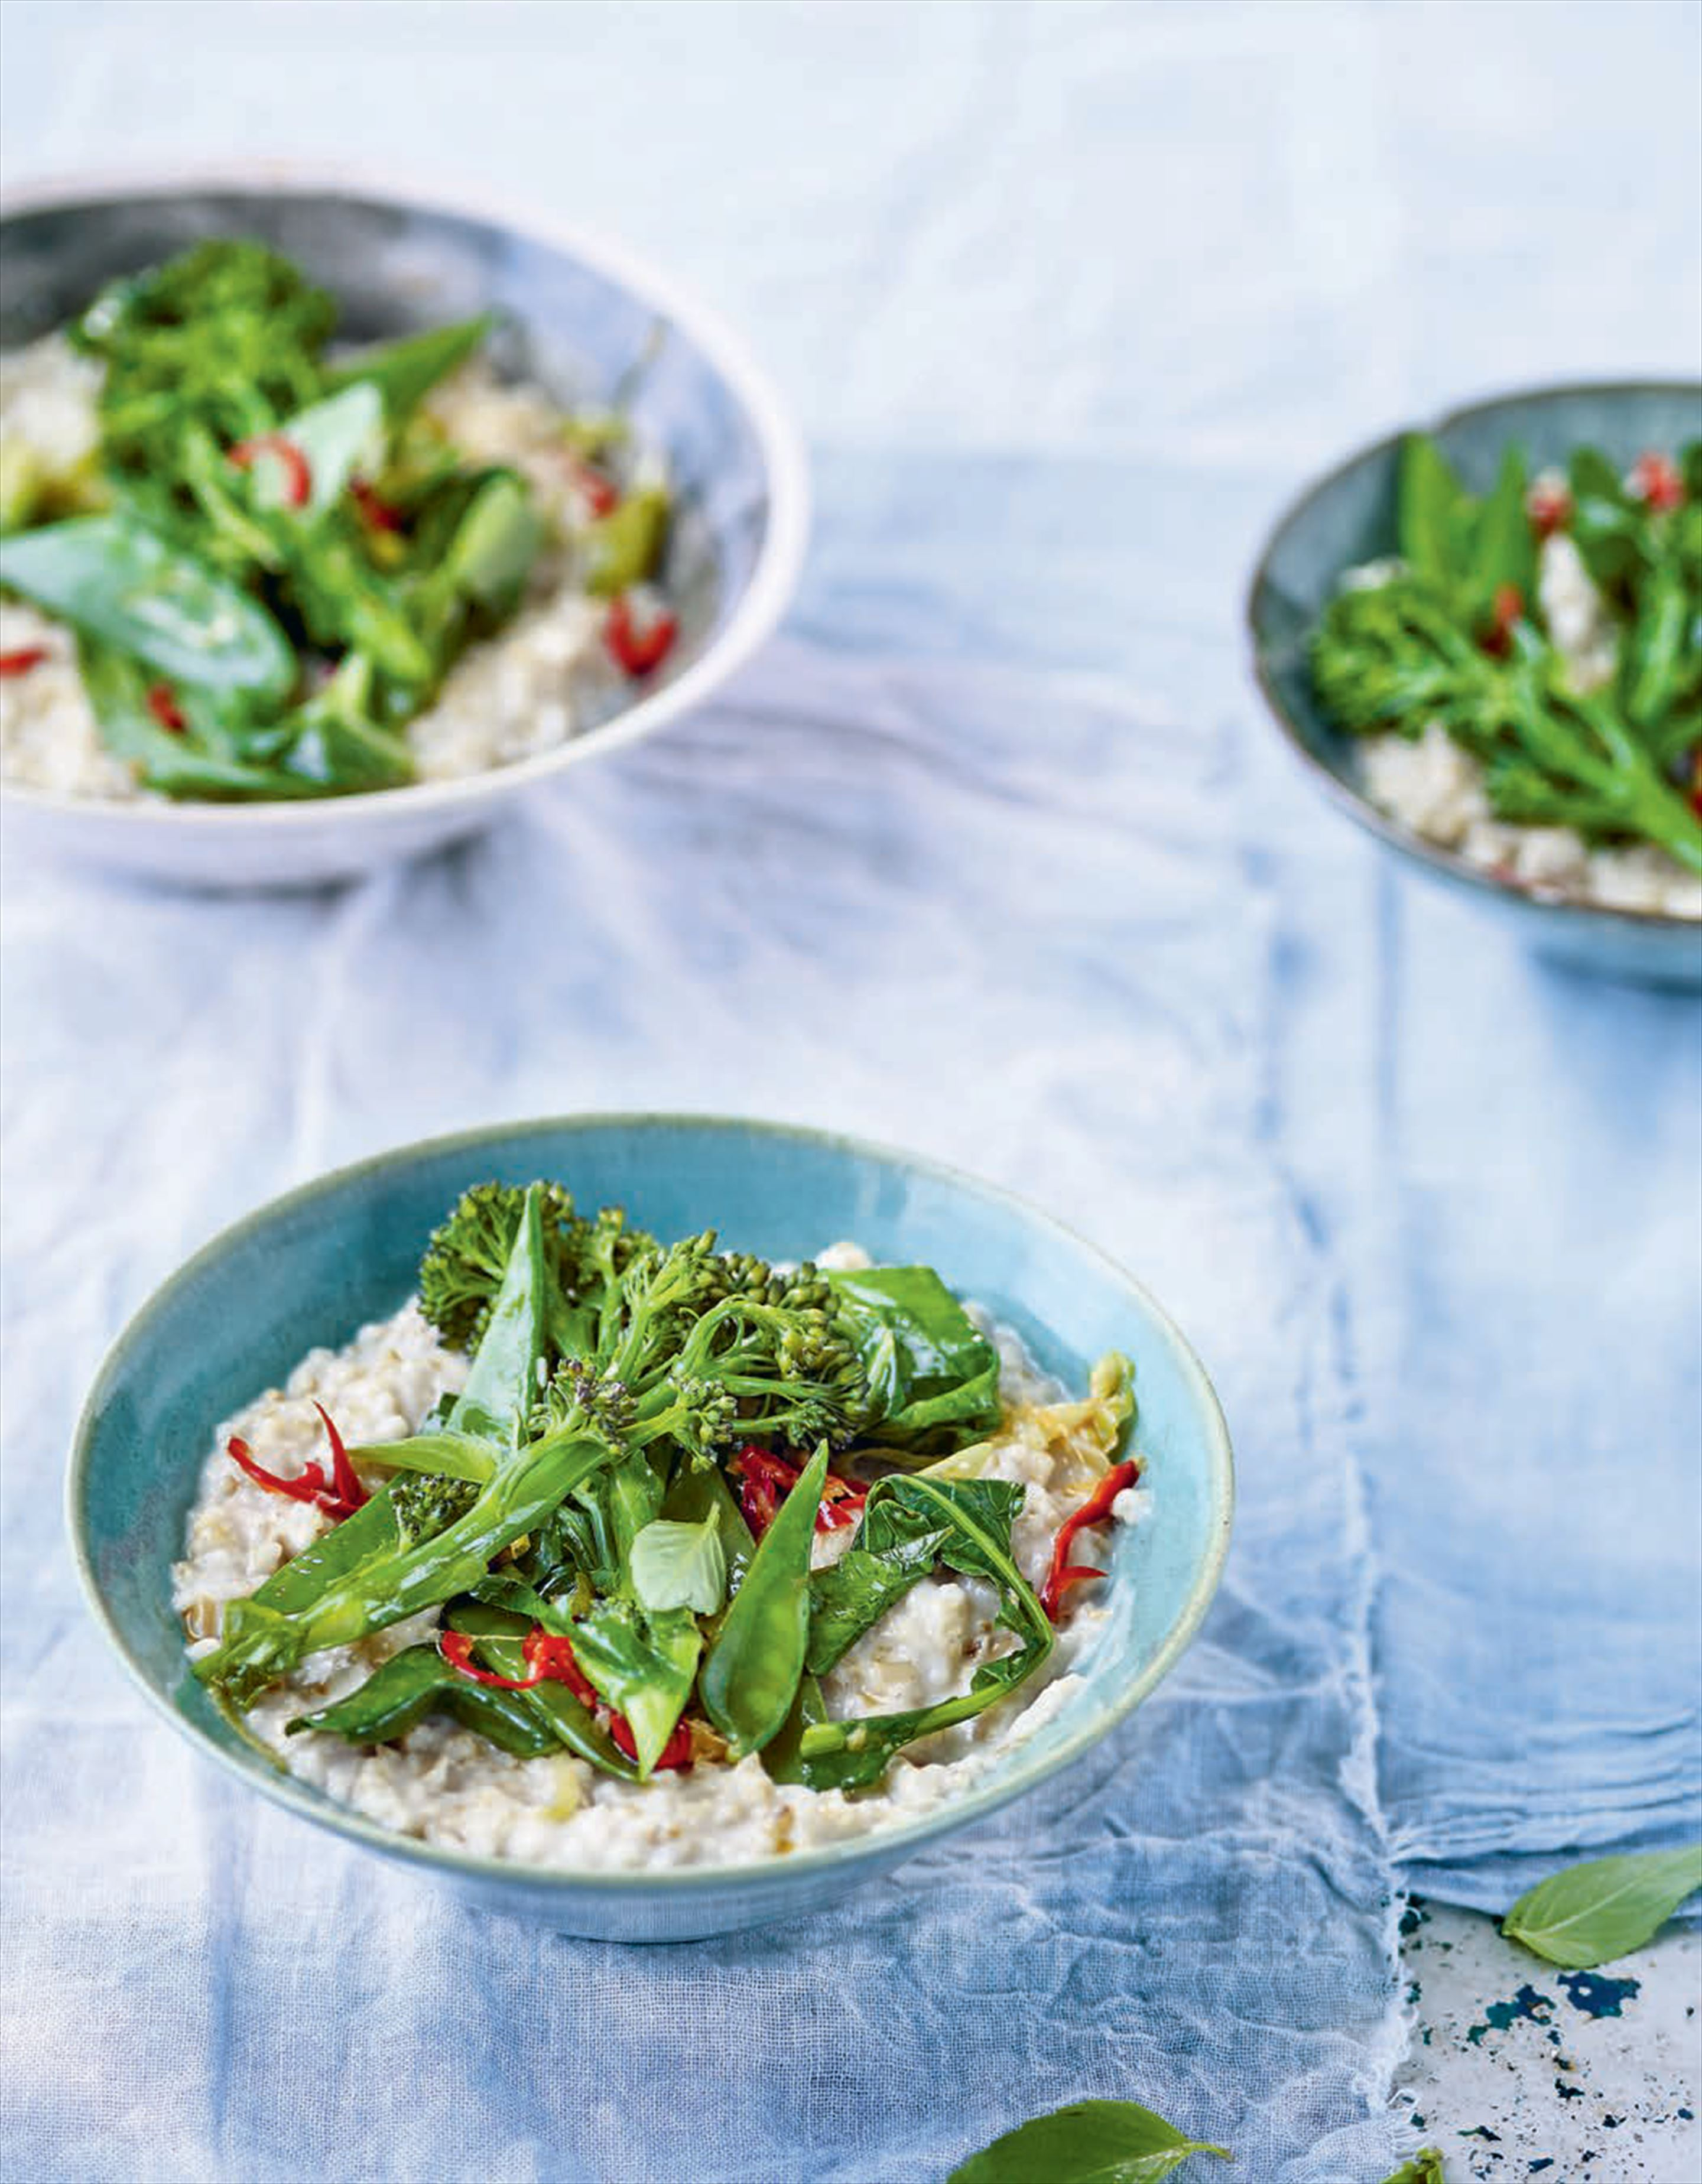 Savoury porridge with oriental greens